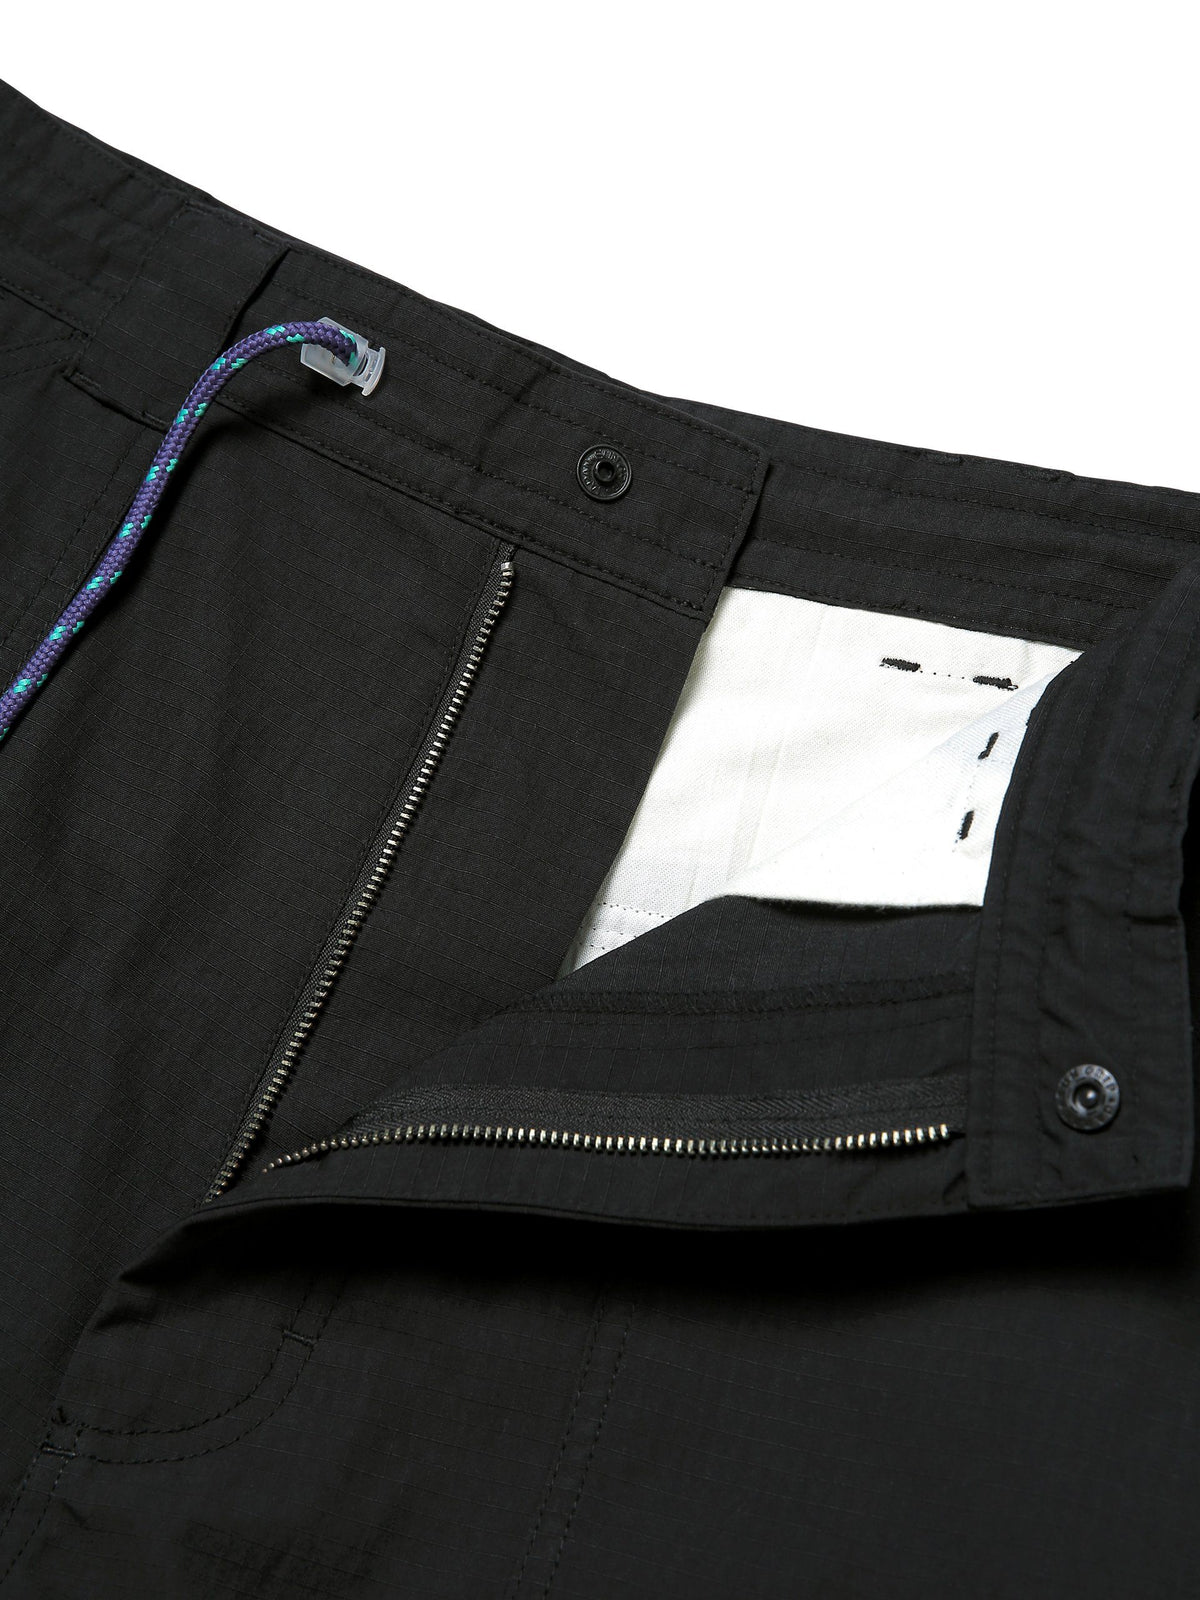 CORDURA® Fatigue Pant Pants